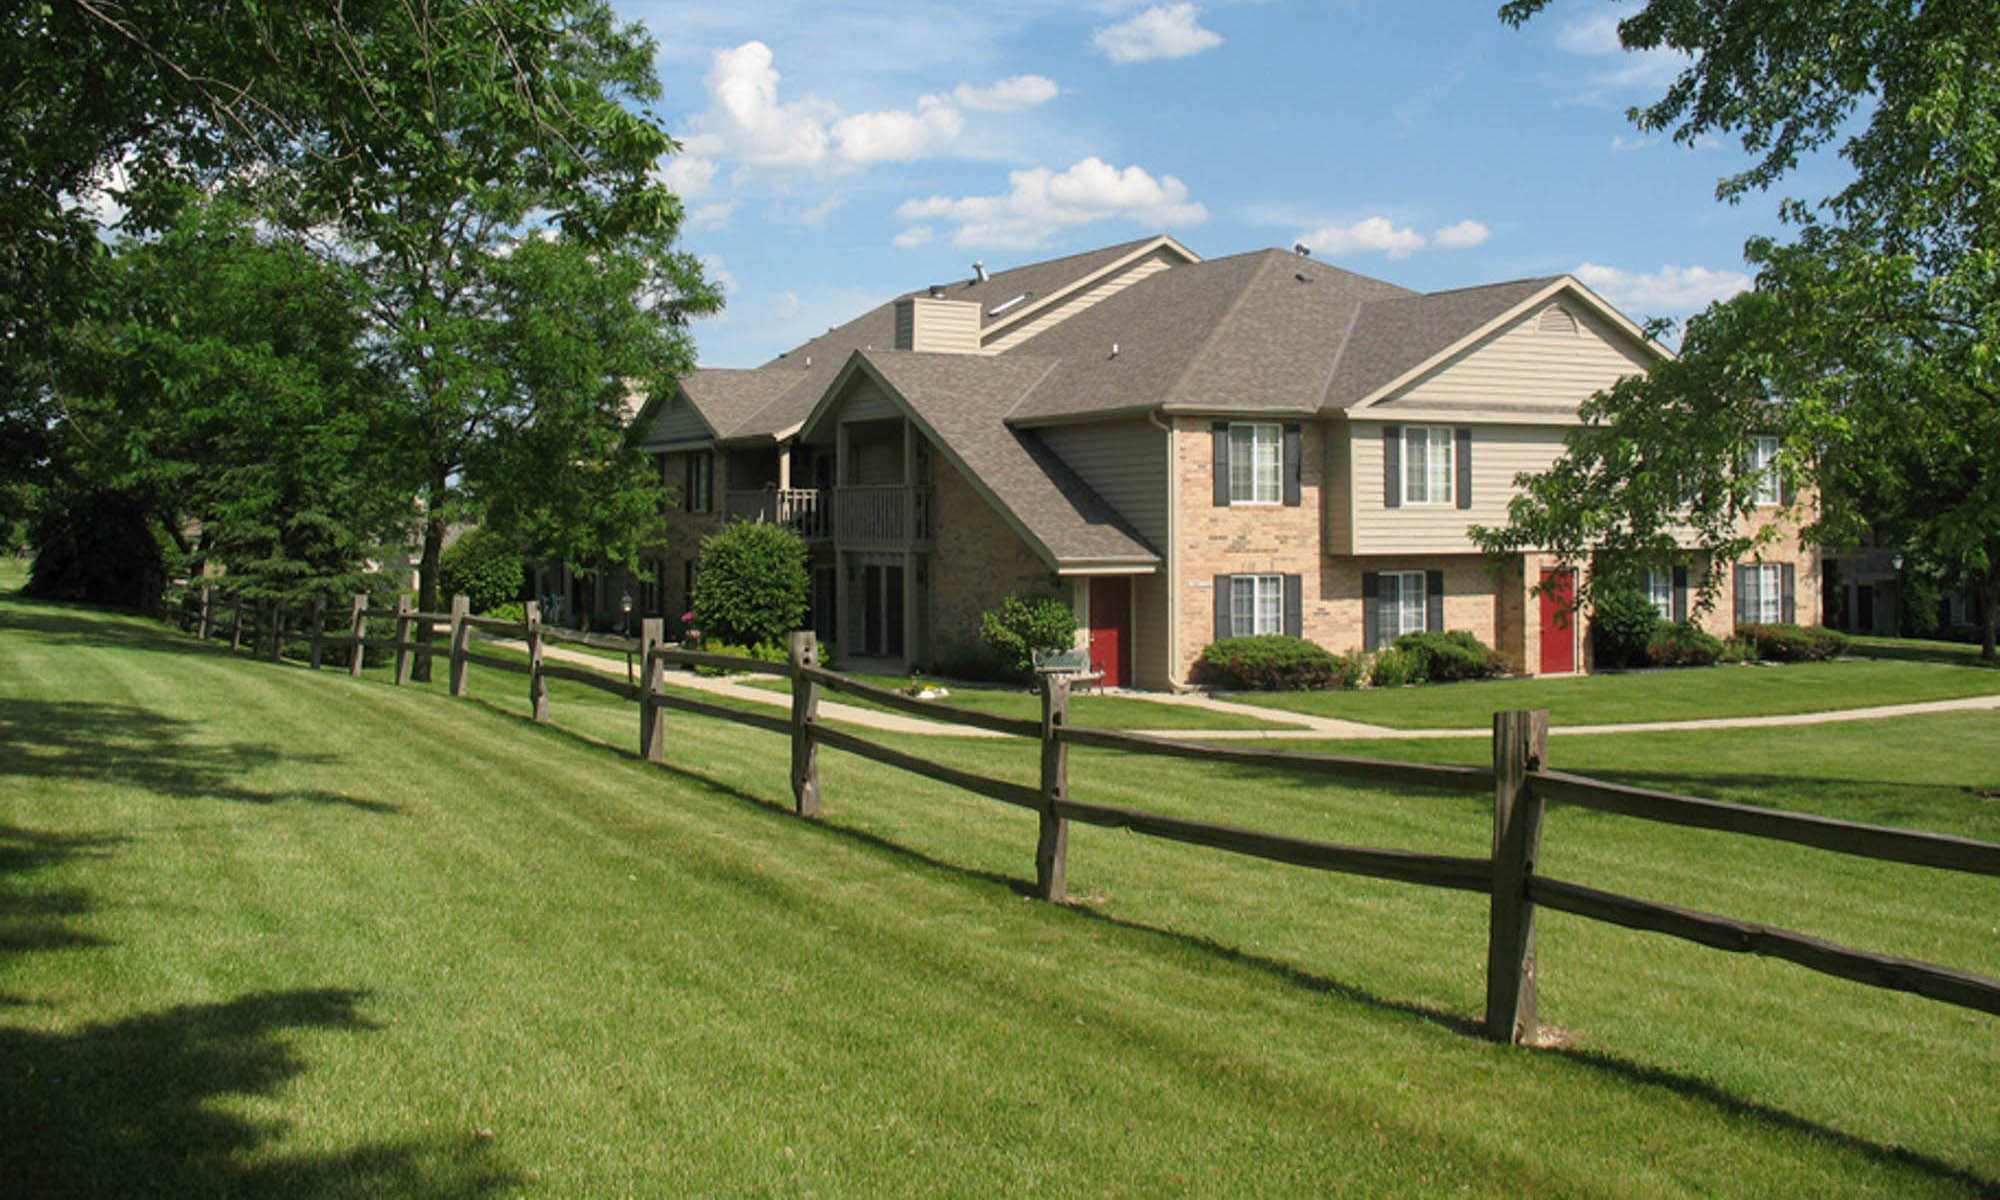 Pewaukee wi apartments for rent near milwaukee - One bedroom apartments in milwaukee ...